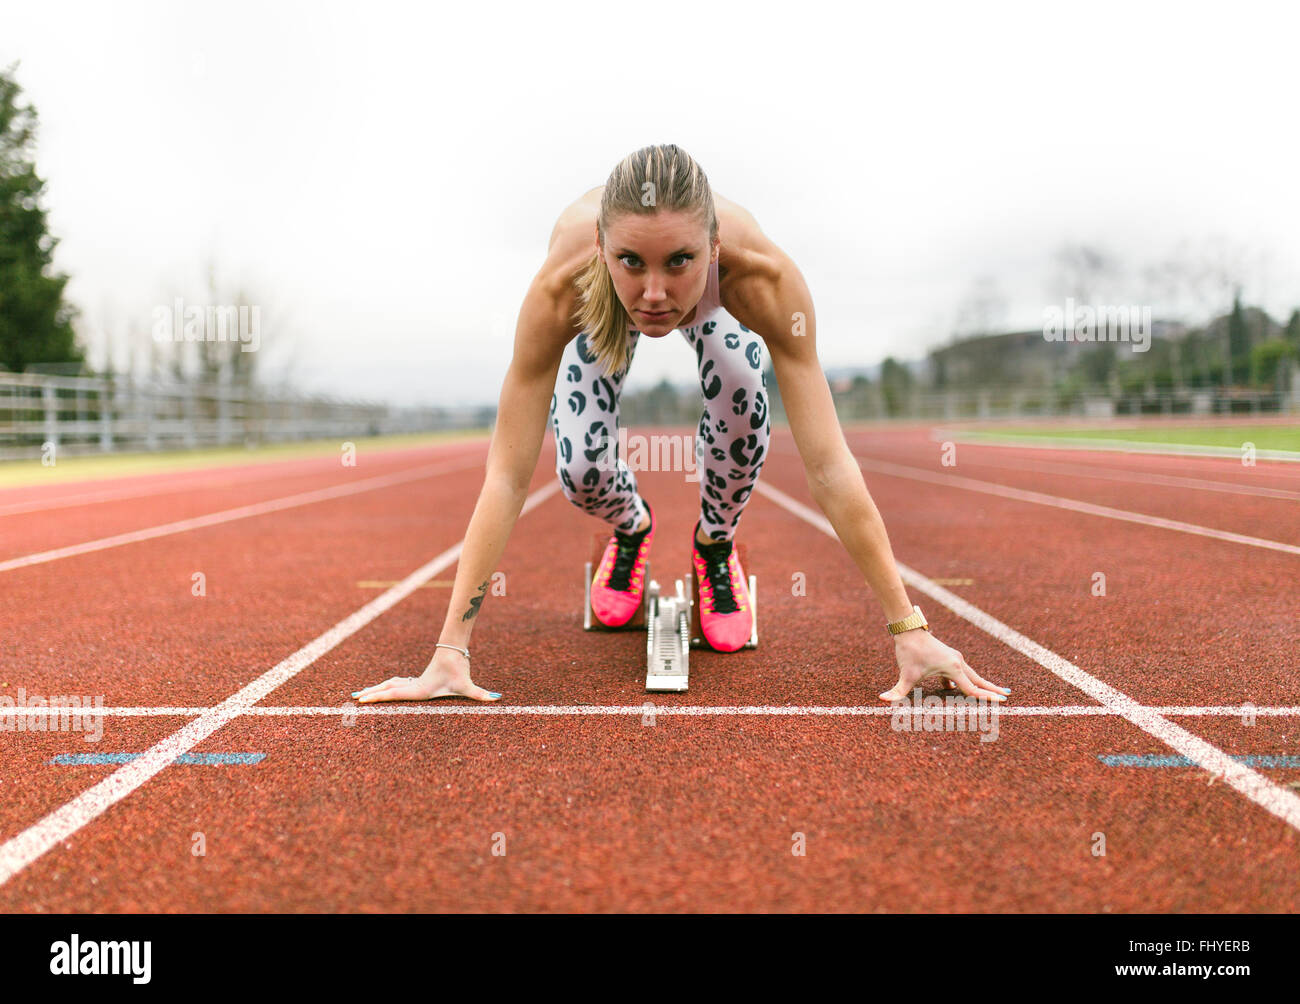 Athlete woman on a running track Stock Photo